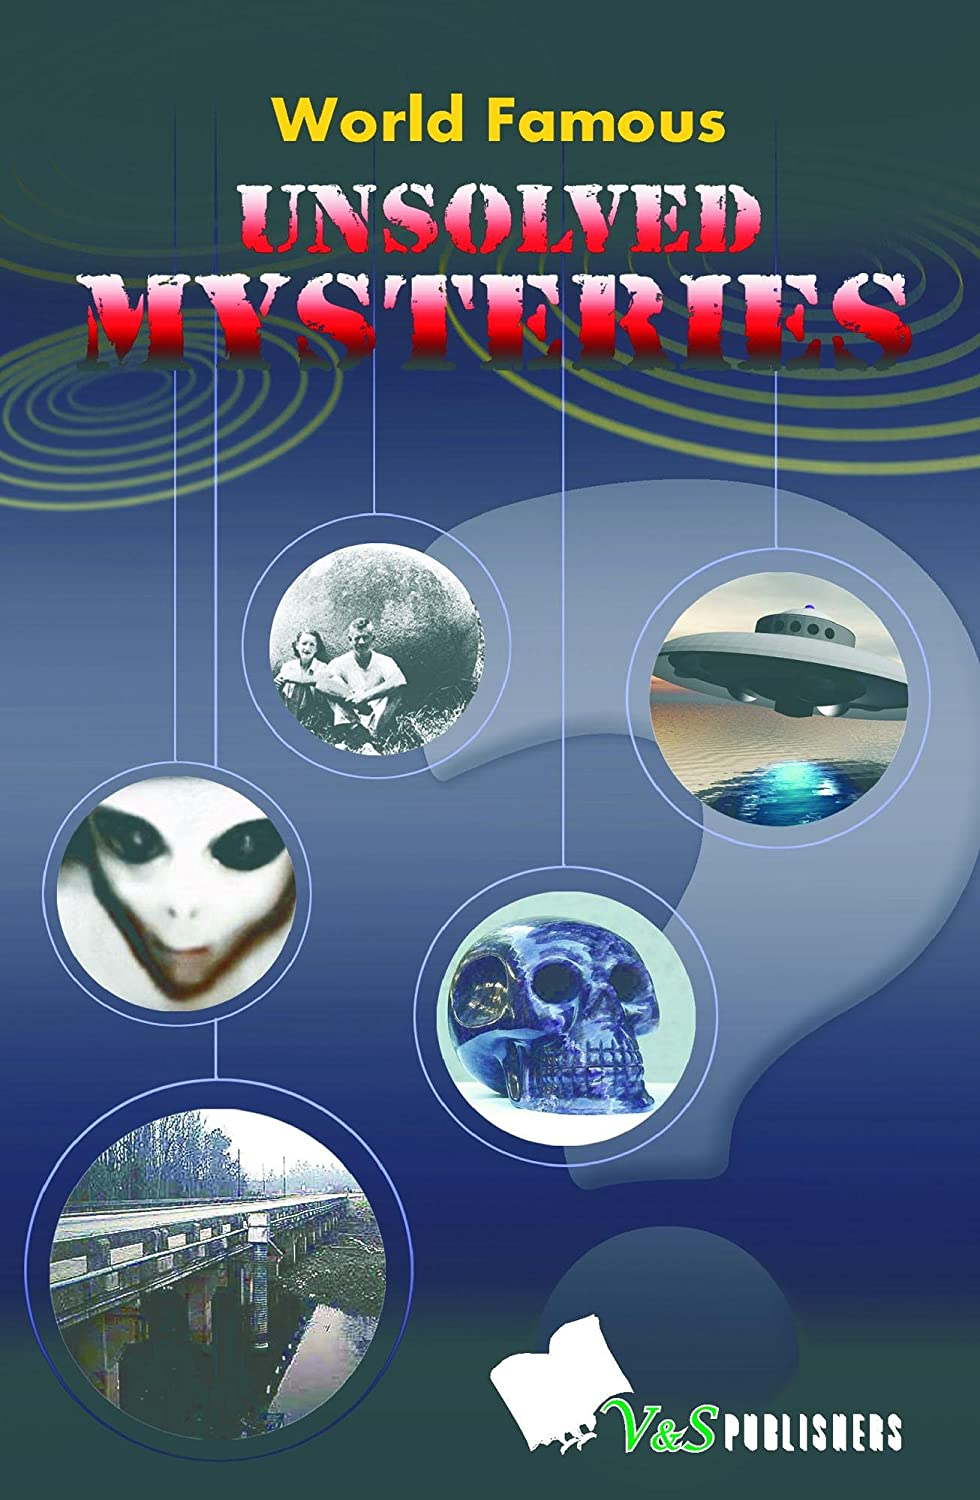 world famous unsolved mysteries Top of the world workarounds  the 6 most mysterious unsolved murders of all time  here are six of the most vexing murder mysteries of all time: 1 jack the ripper terrorized london.